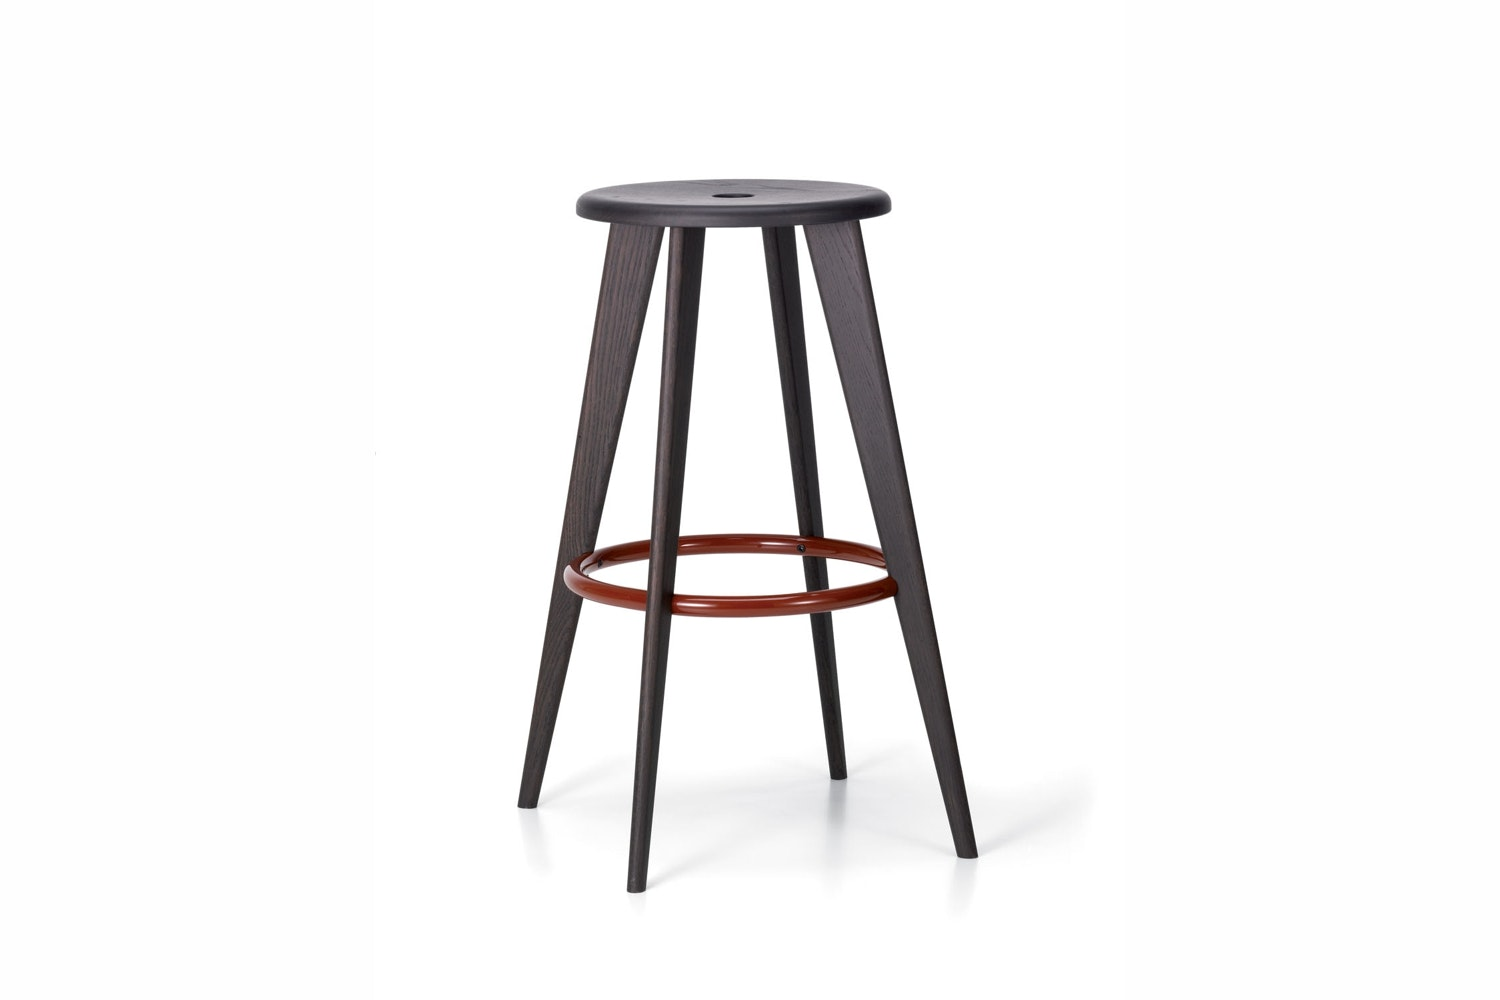 Tabouret Haut Stool by Jean Prouve for Vitra